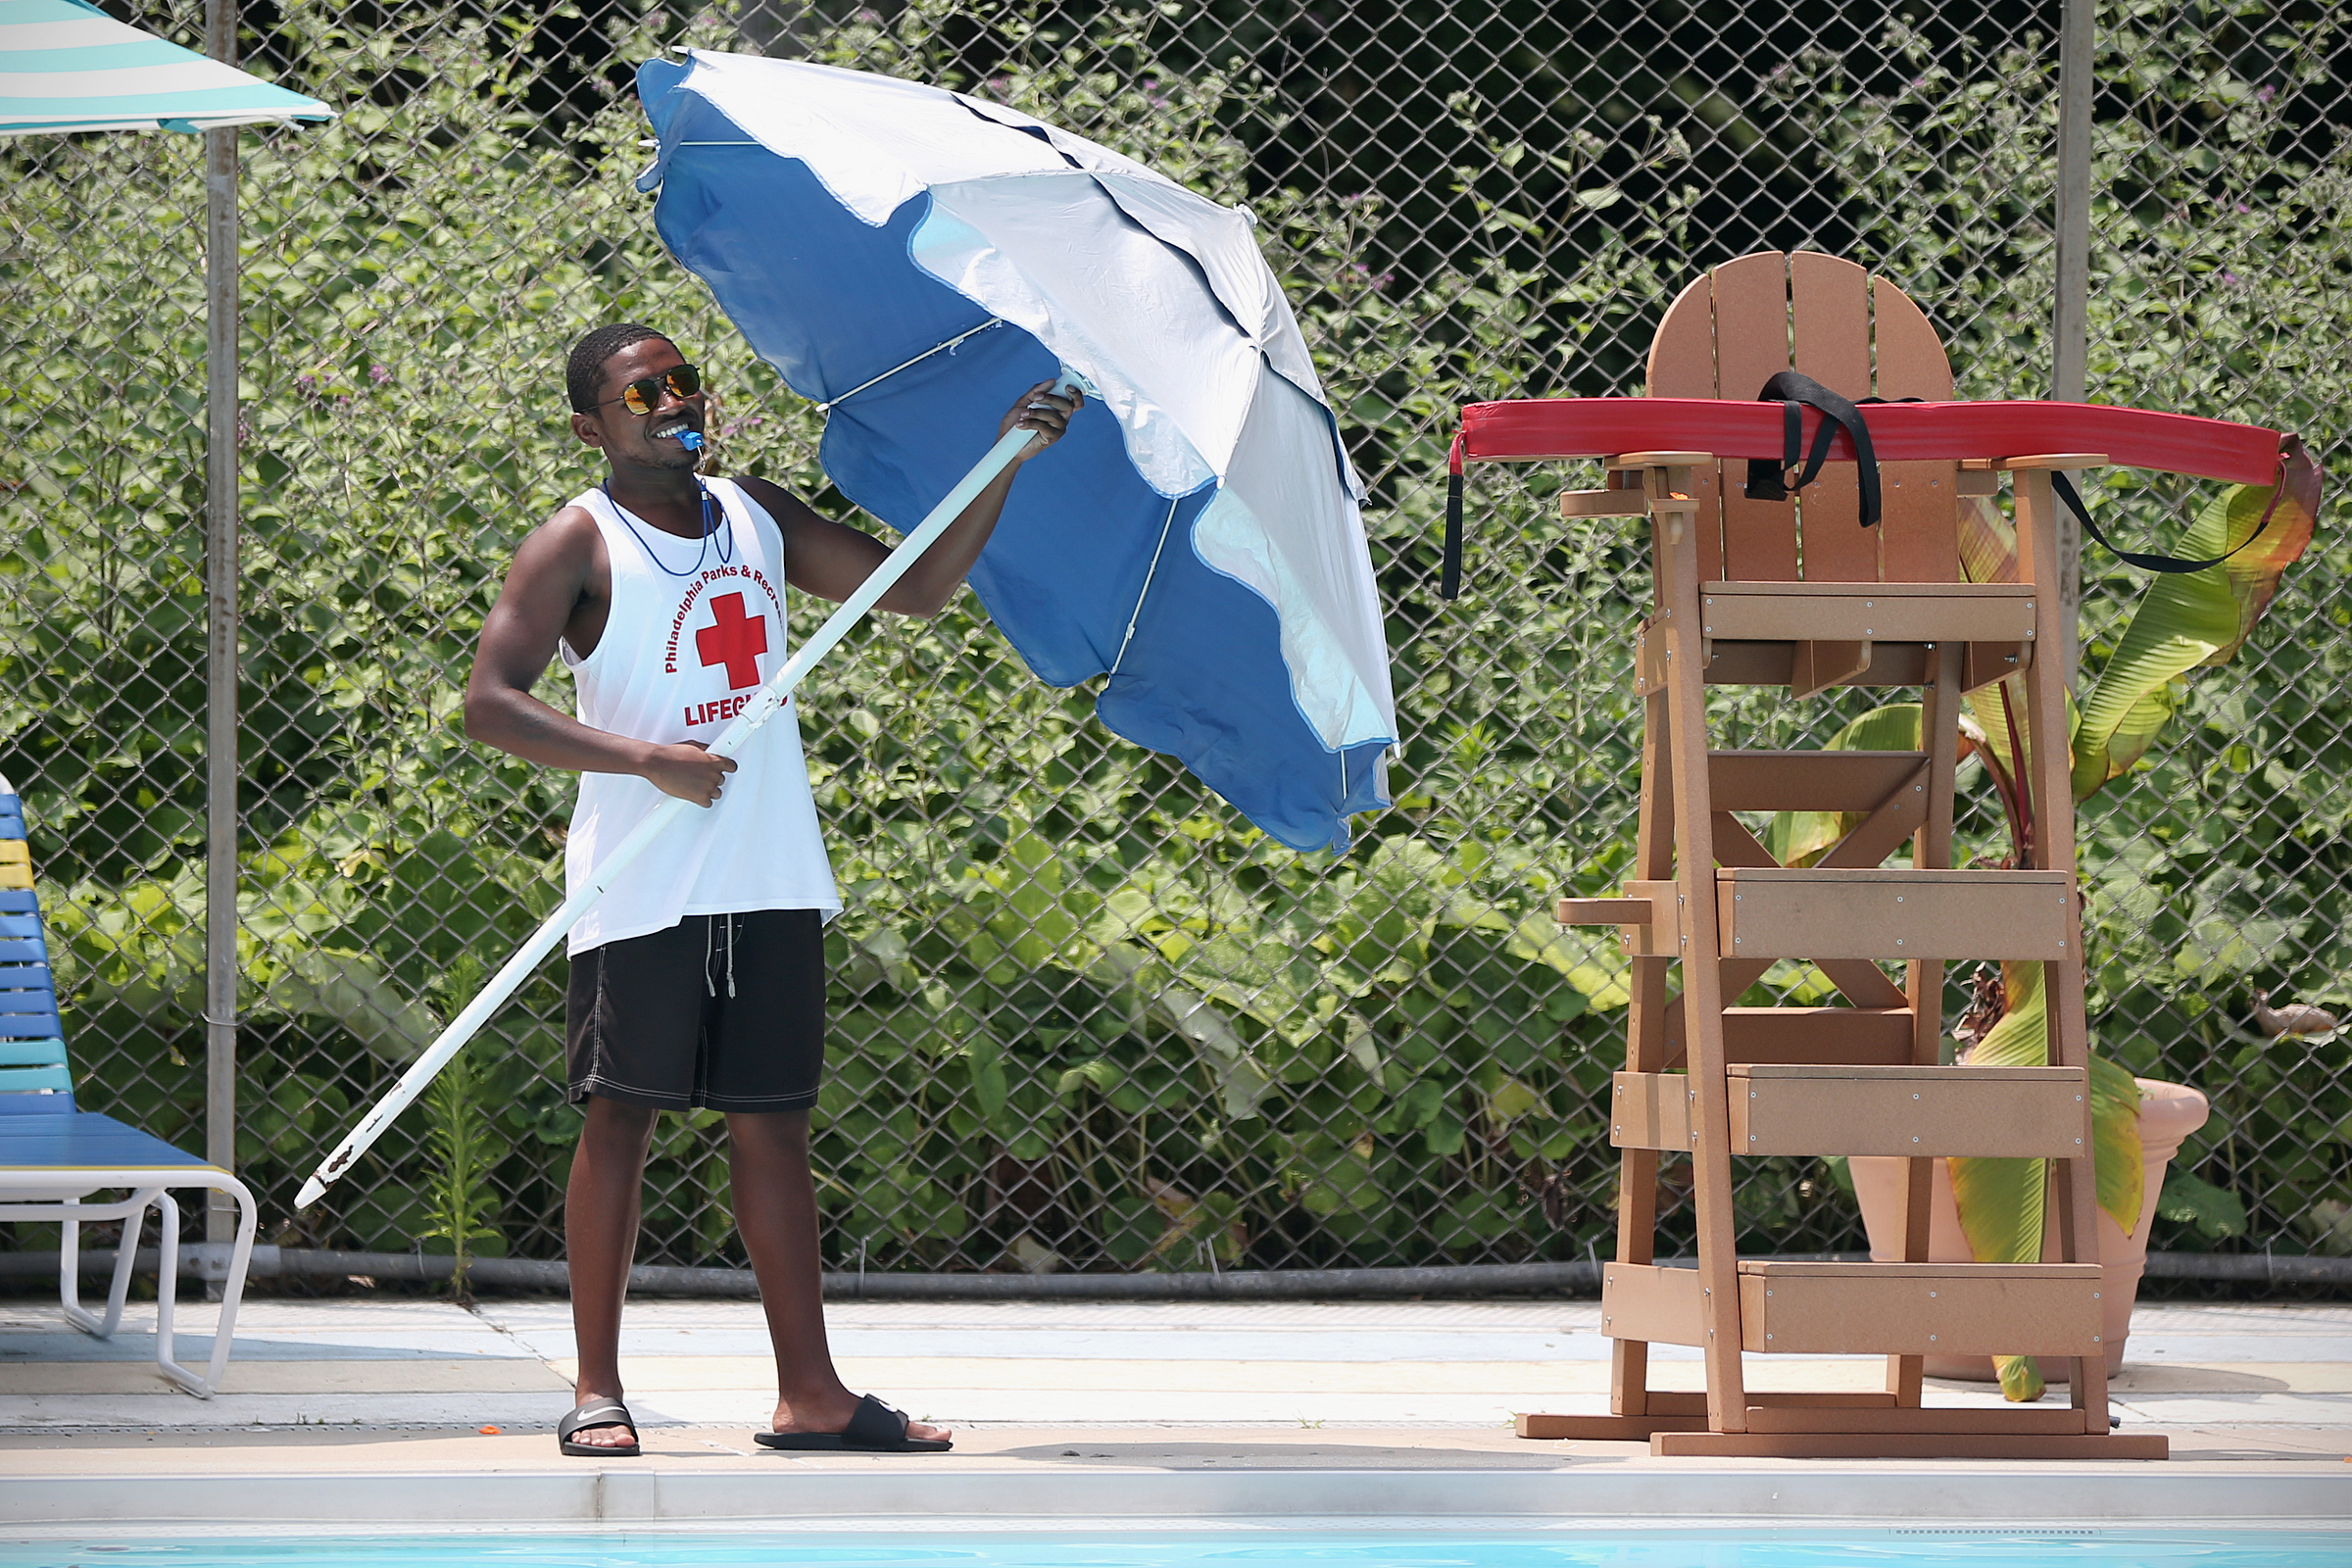 Lifeguard Hosni Knox, 18, opens an umbrella at the Lee Cultural Center pool in West Philadelphia on Tuesday July 3, 2018.